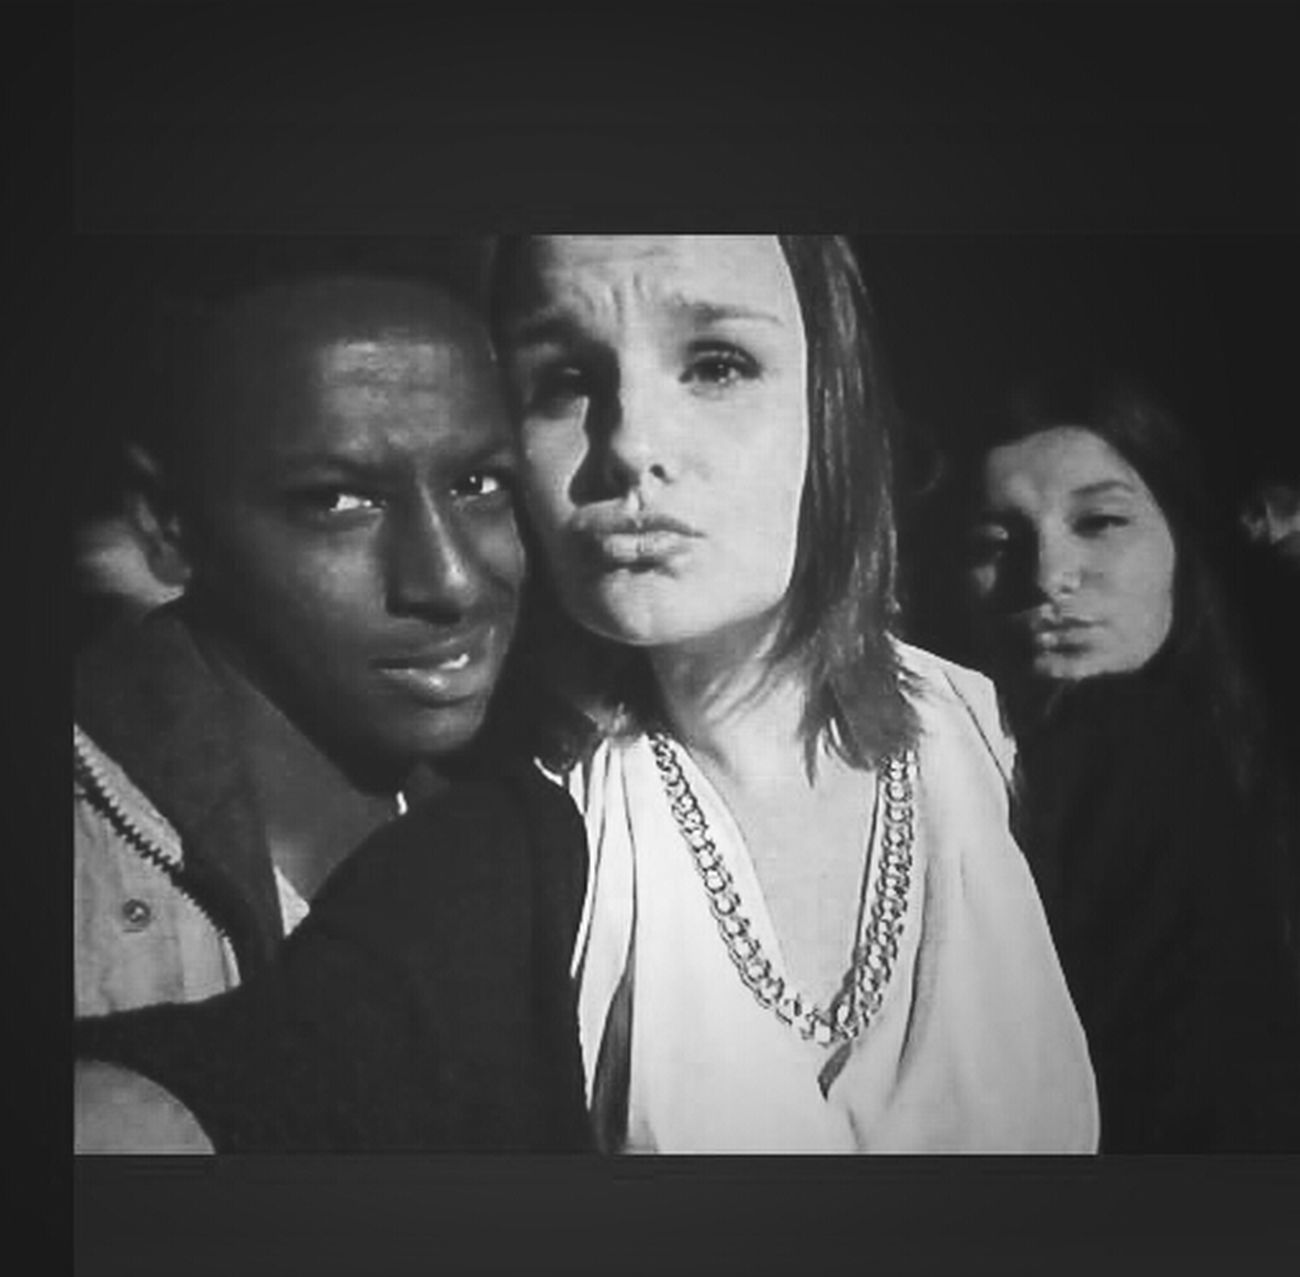 ♡ 16/05 ♡ Friends Soiree Posey Alcool  Hapiness